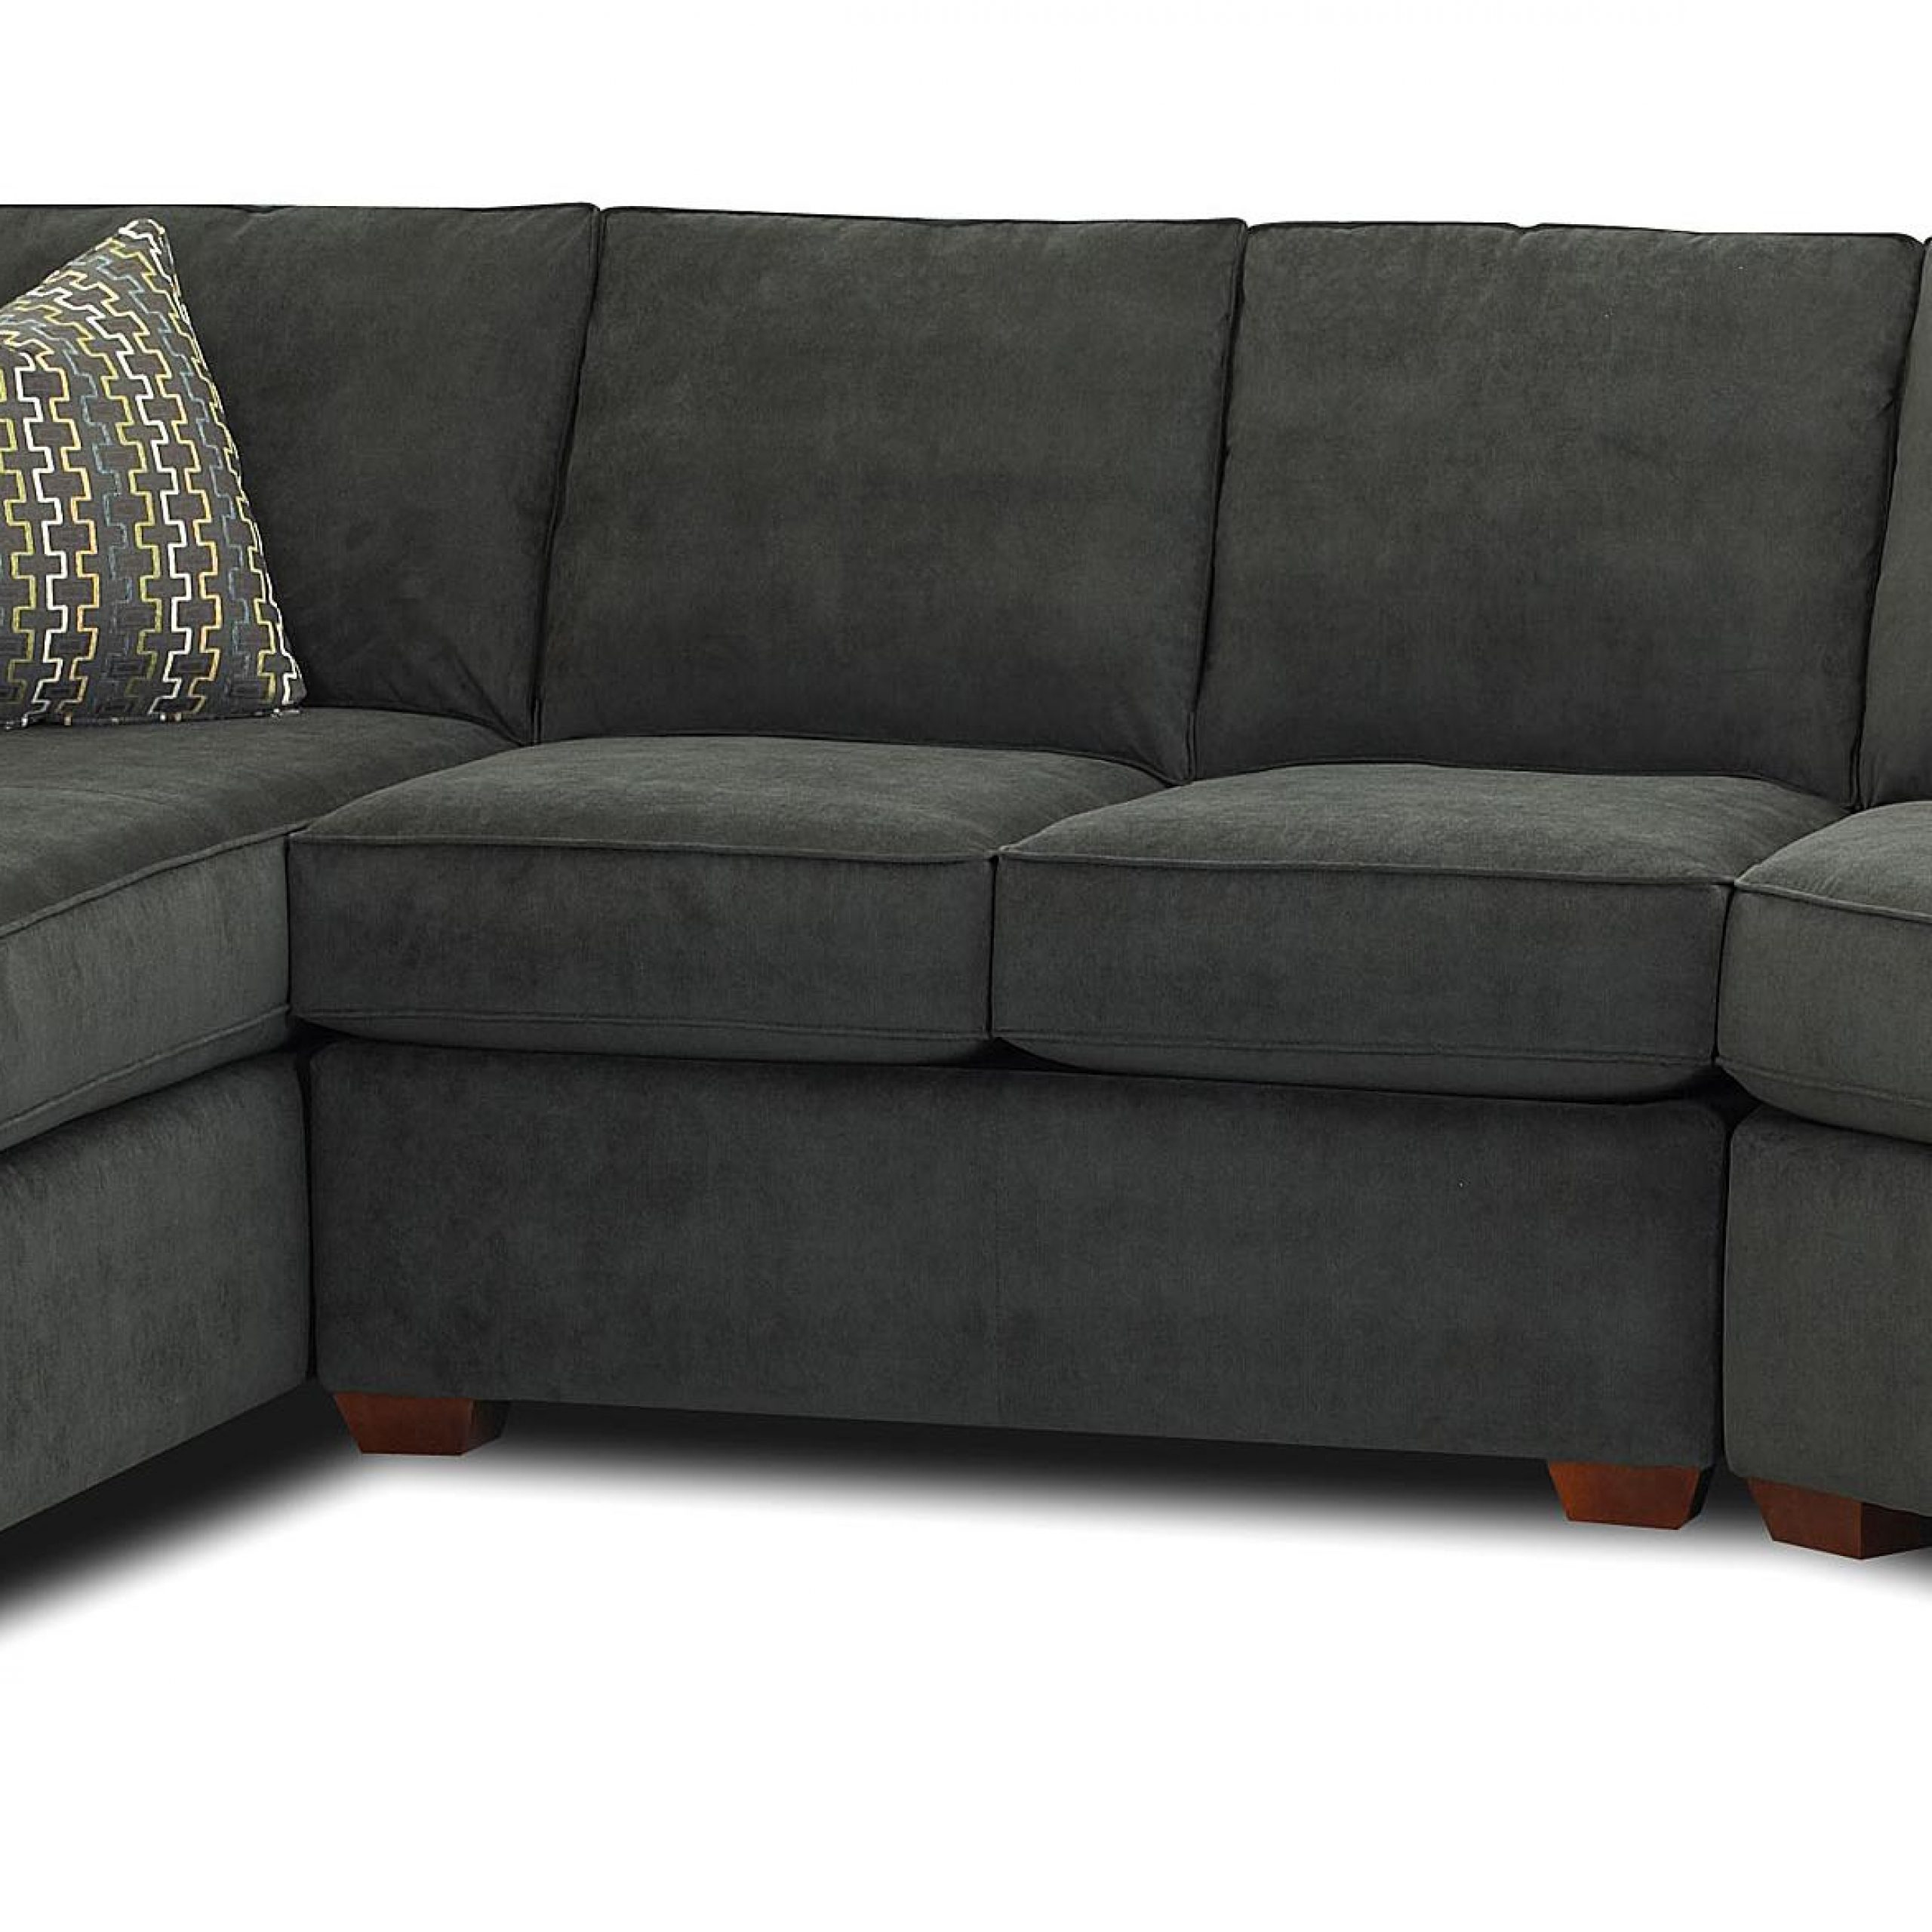 Trendy Sectional Sofa With Right Facing Sofa Chaiseklaussner With Regard To Kiefer Right Facing Sectional Sofas (View 10 of 25)